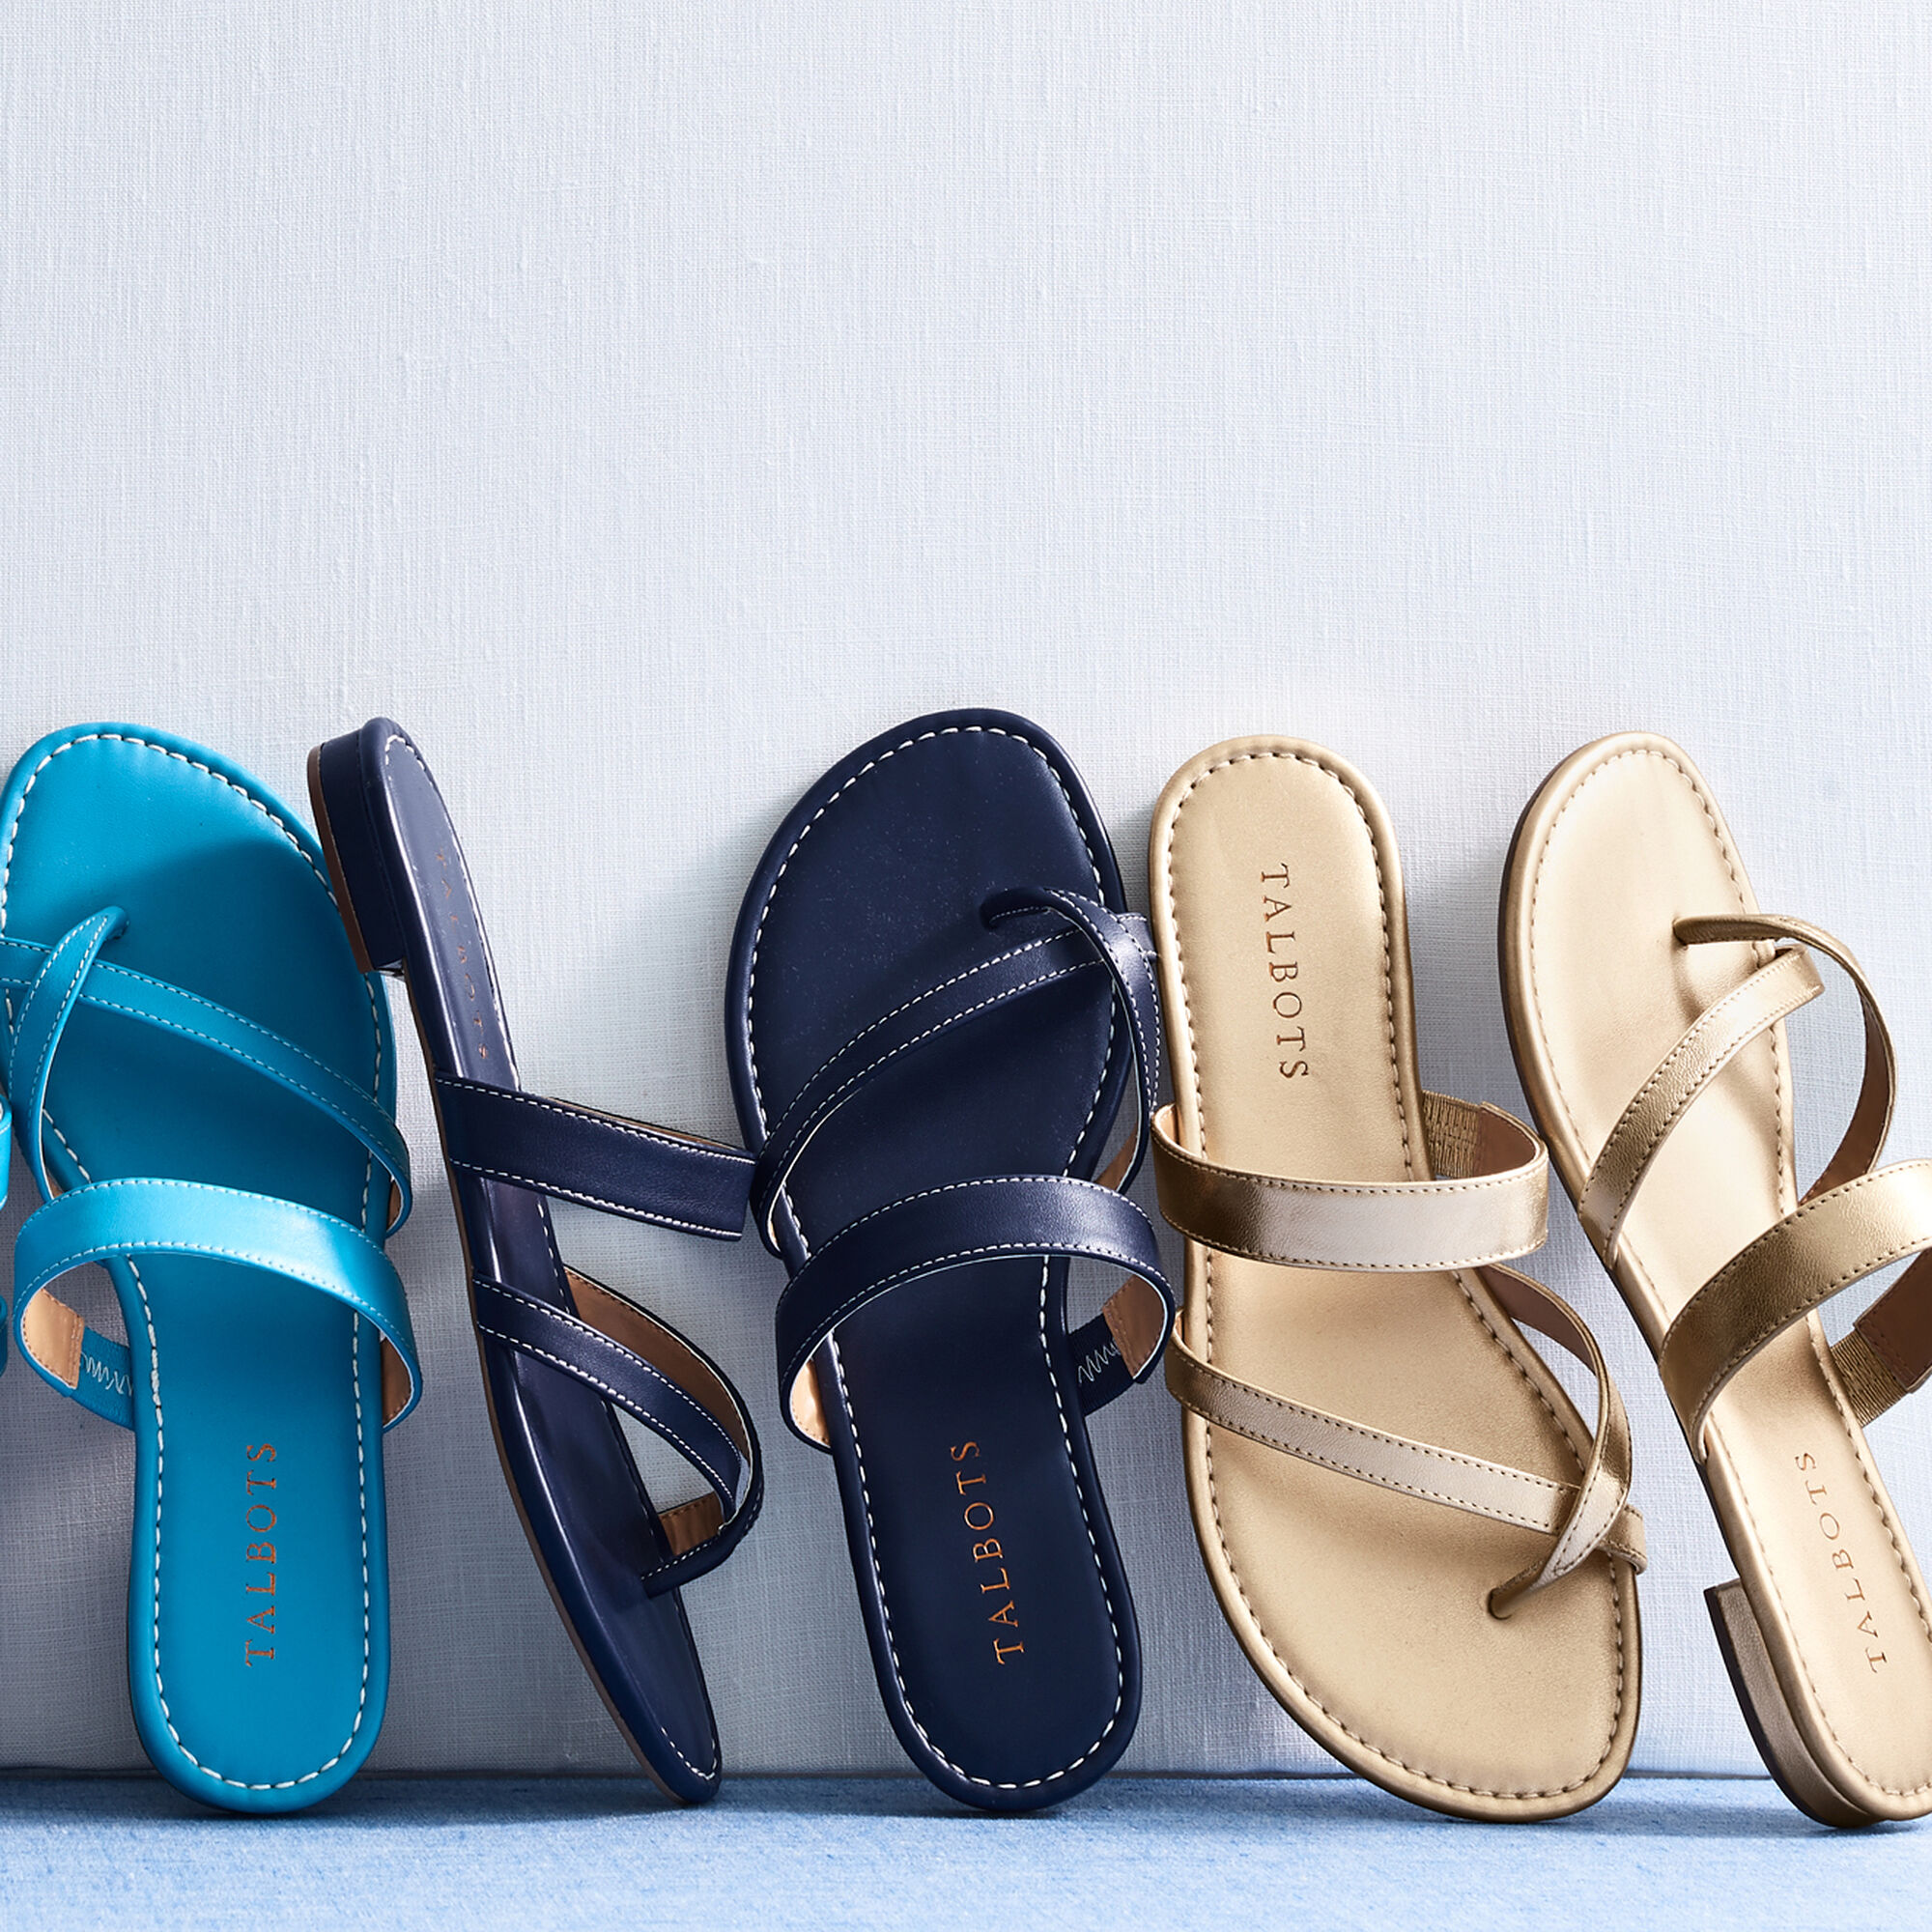 4c9e7d8af Gia Toe-Ring Sandals - Metallic Nappa Opens a New Window.